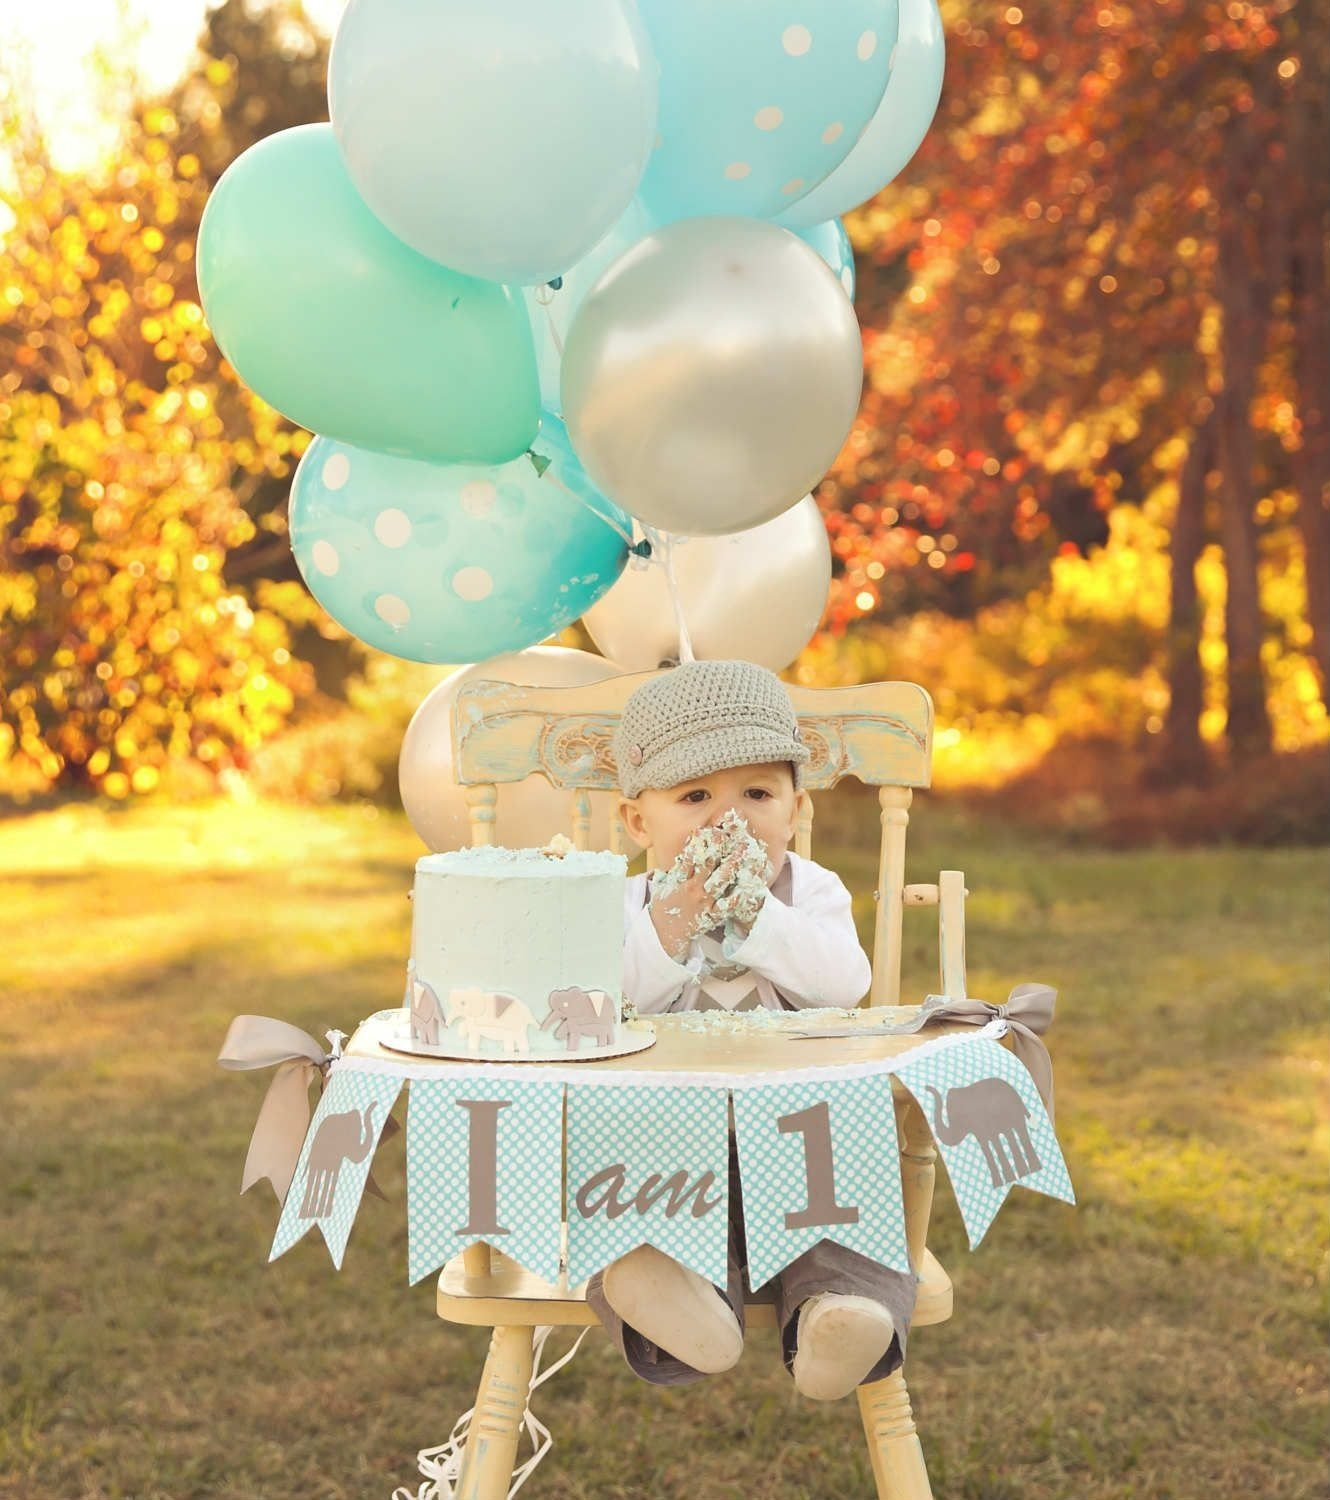 10 1st birthday party ideas for boys part 2 | birthday decorations